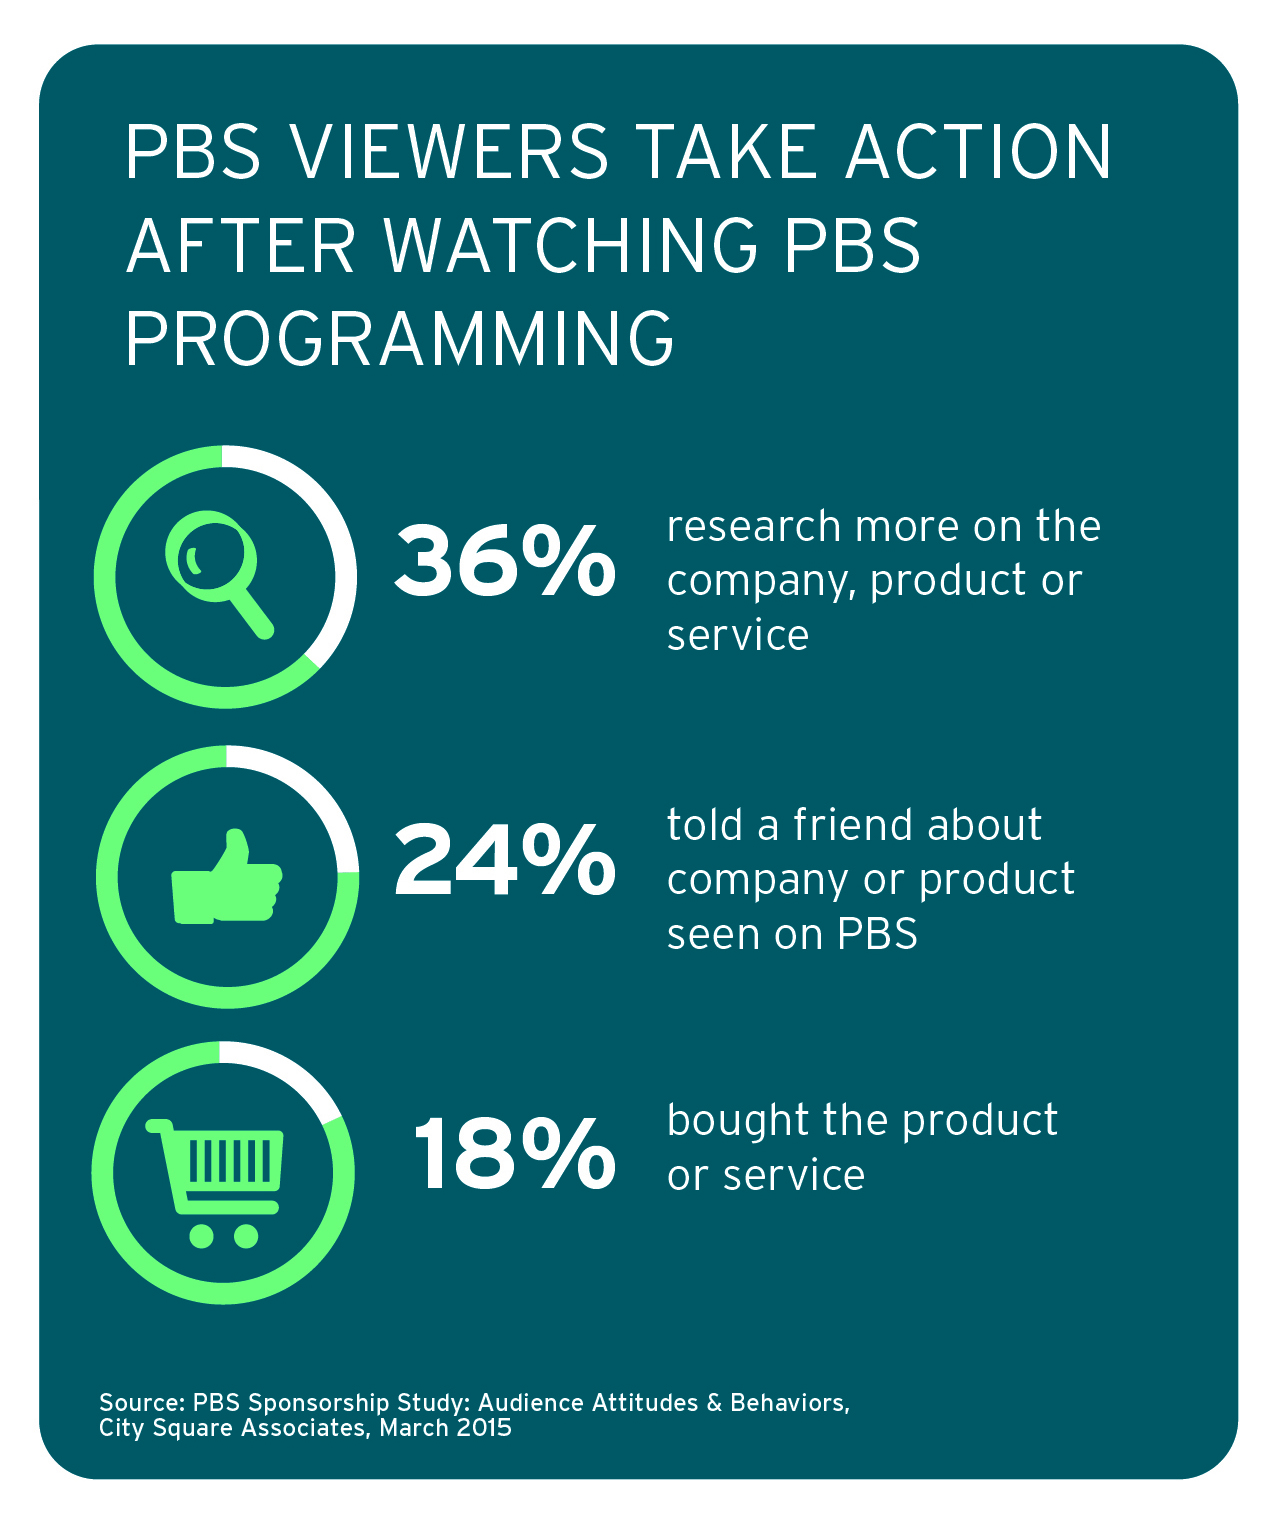 PBS Viewers Take Action